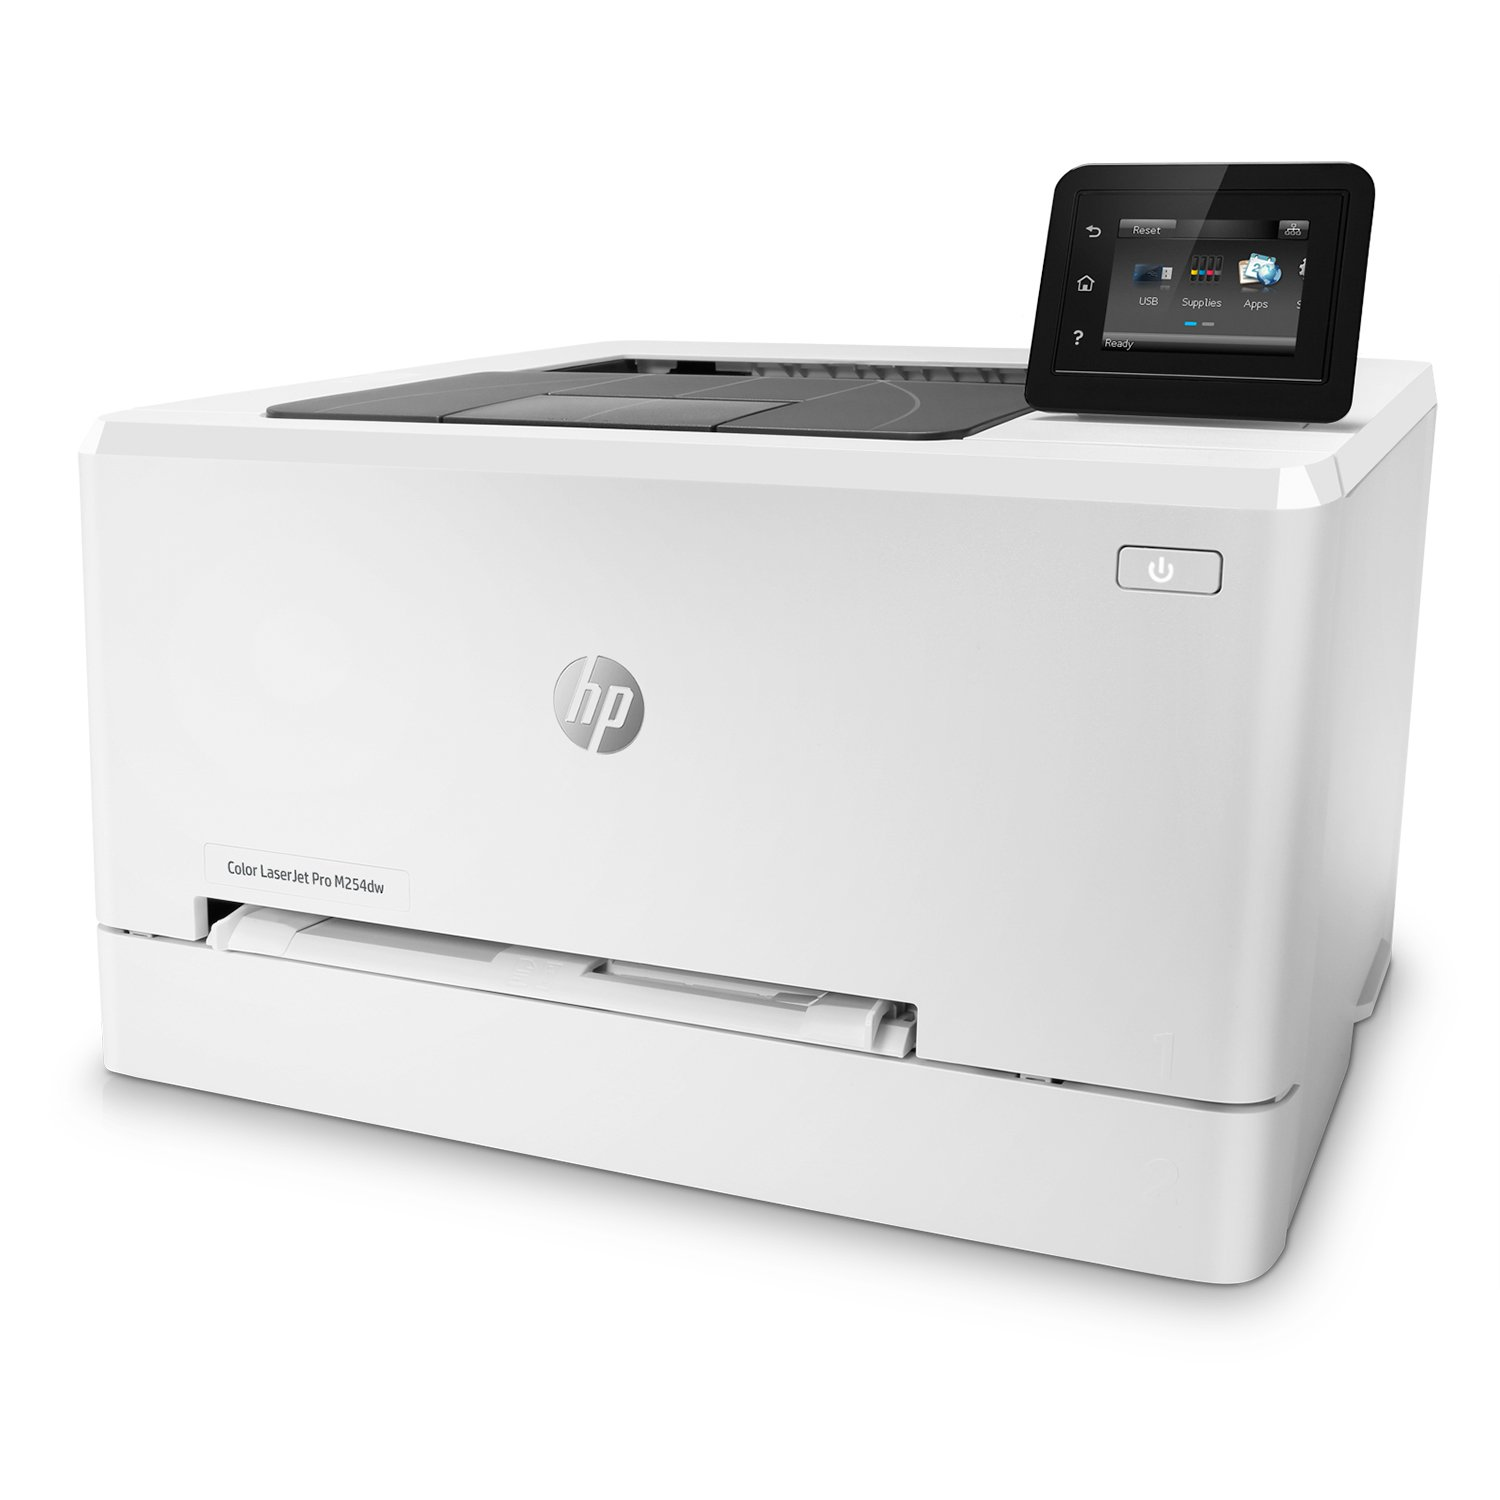 Amazon.com: HP Laserjet Pro M254dw Wireless Color Laser Printer, Amazon  Dash Replenishment Ready (T6B60A): Office Products